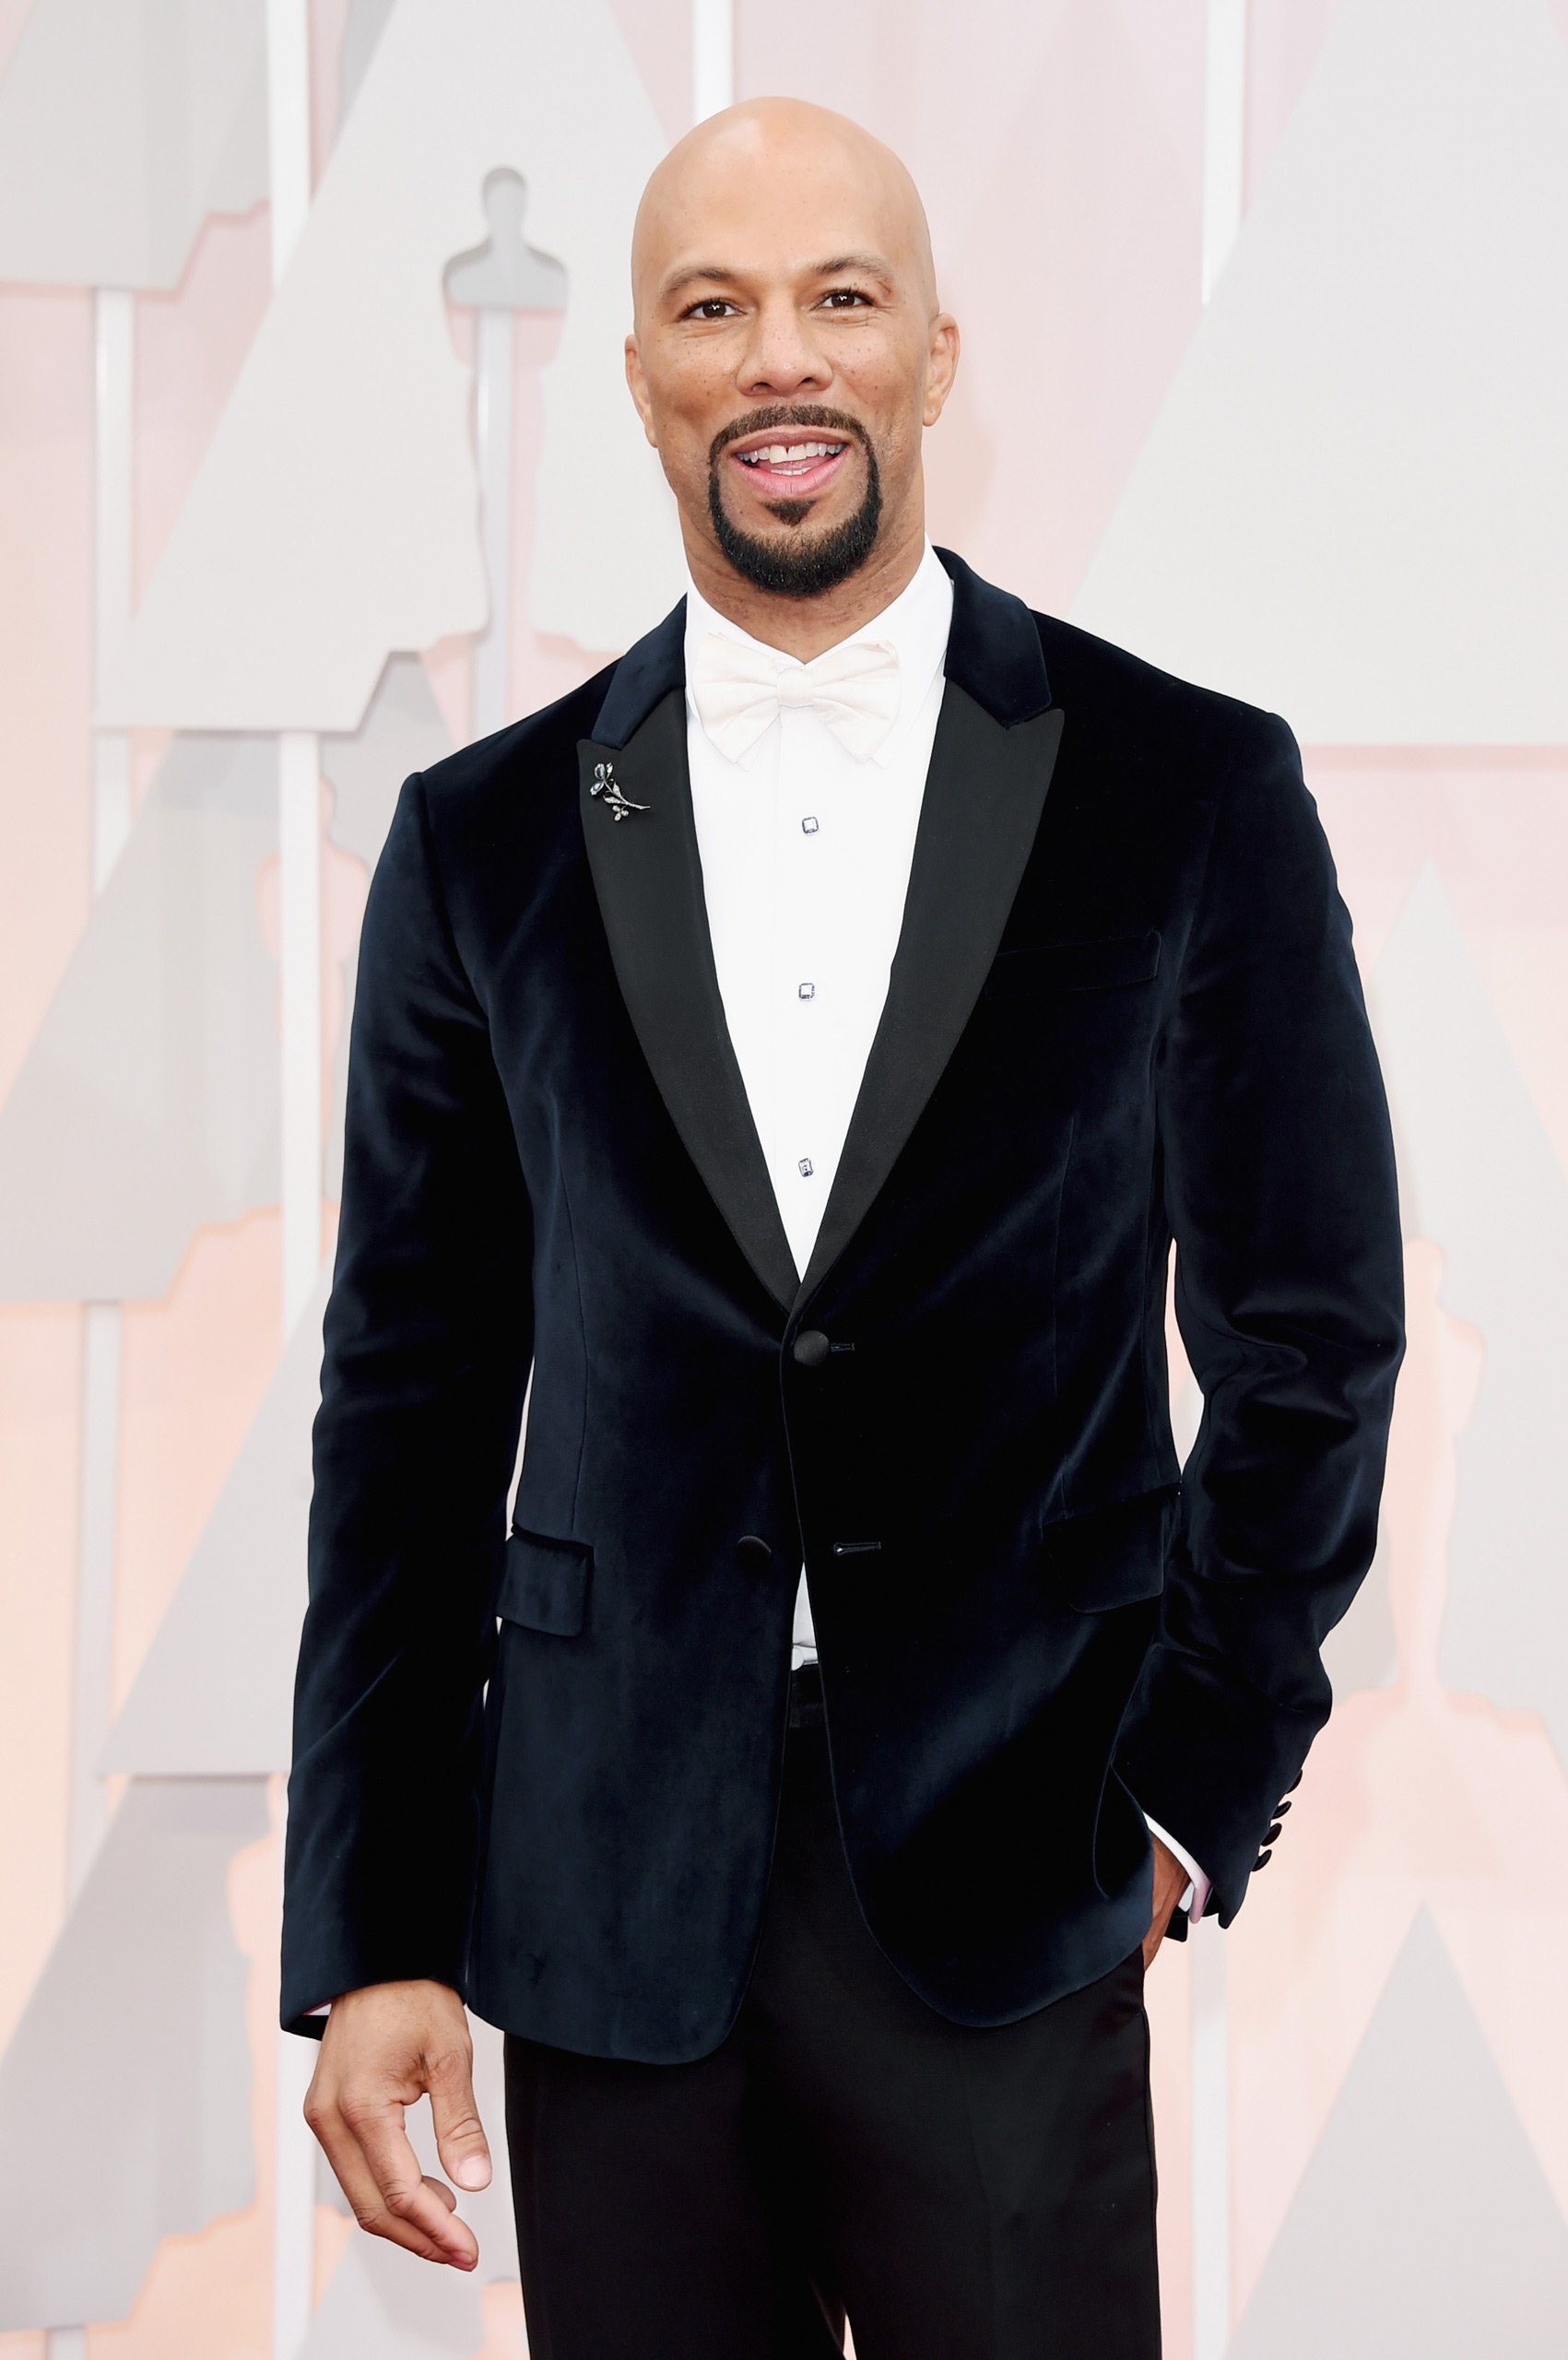 Common attends the 87th Annual Academy Awards on Feb. 22, 2015 in Hollywood, Calif.